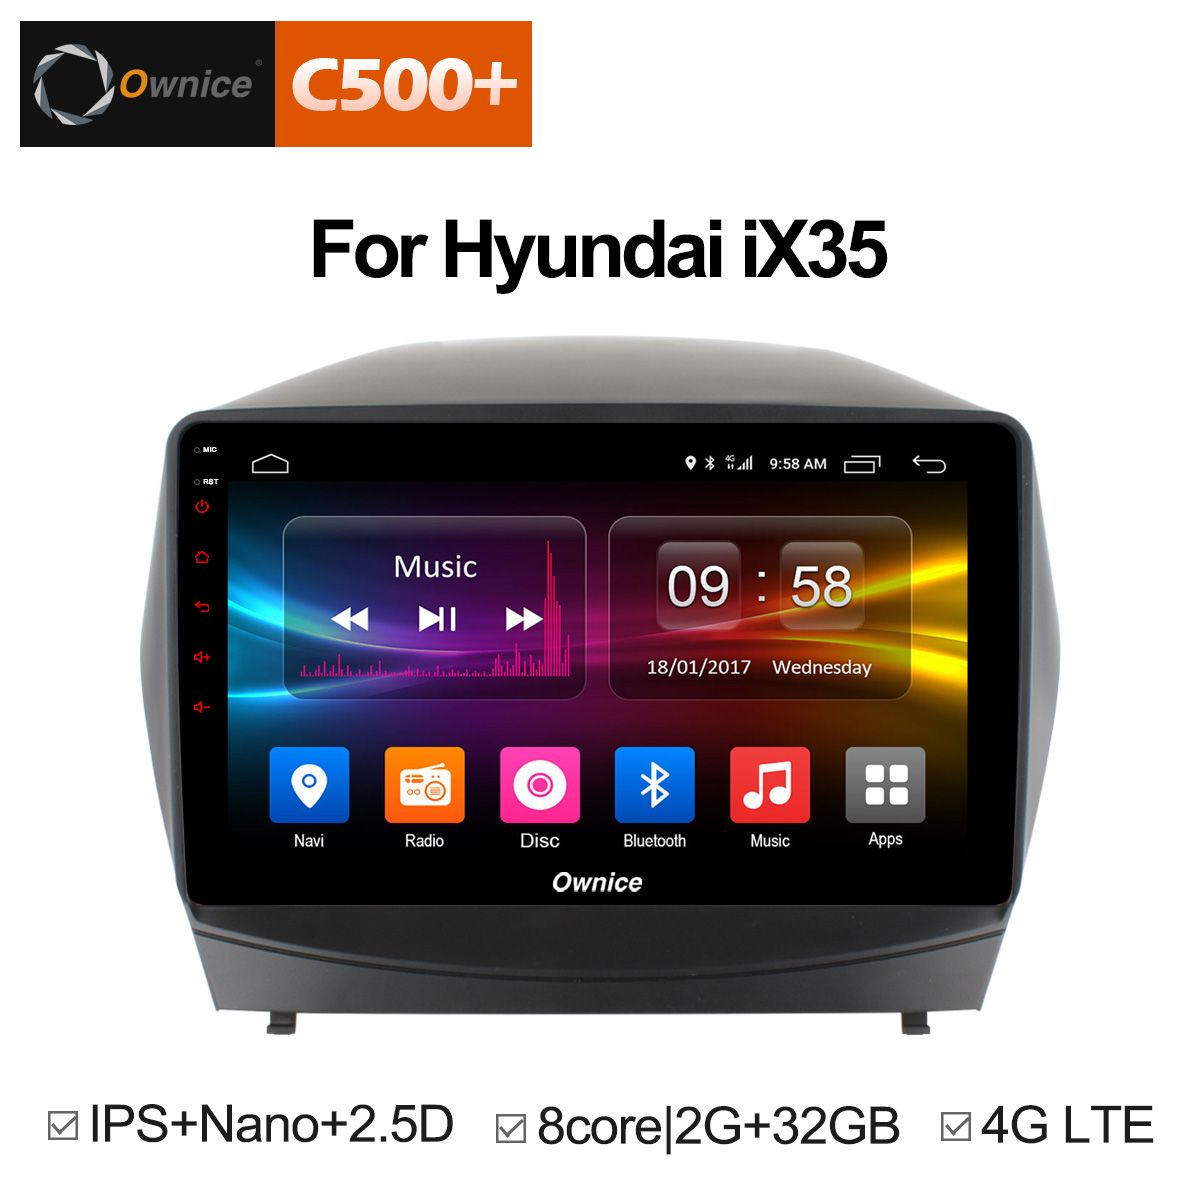 Ownice C500+ G10 Octa Eight Core Android 8.1 Car radio DVD player GPS for Hyundai iX35 2010 - 2015 2G RAM 32G ROM Support 4G LTE